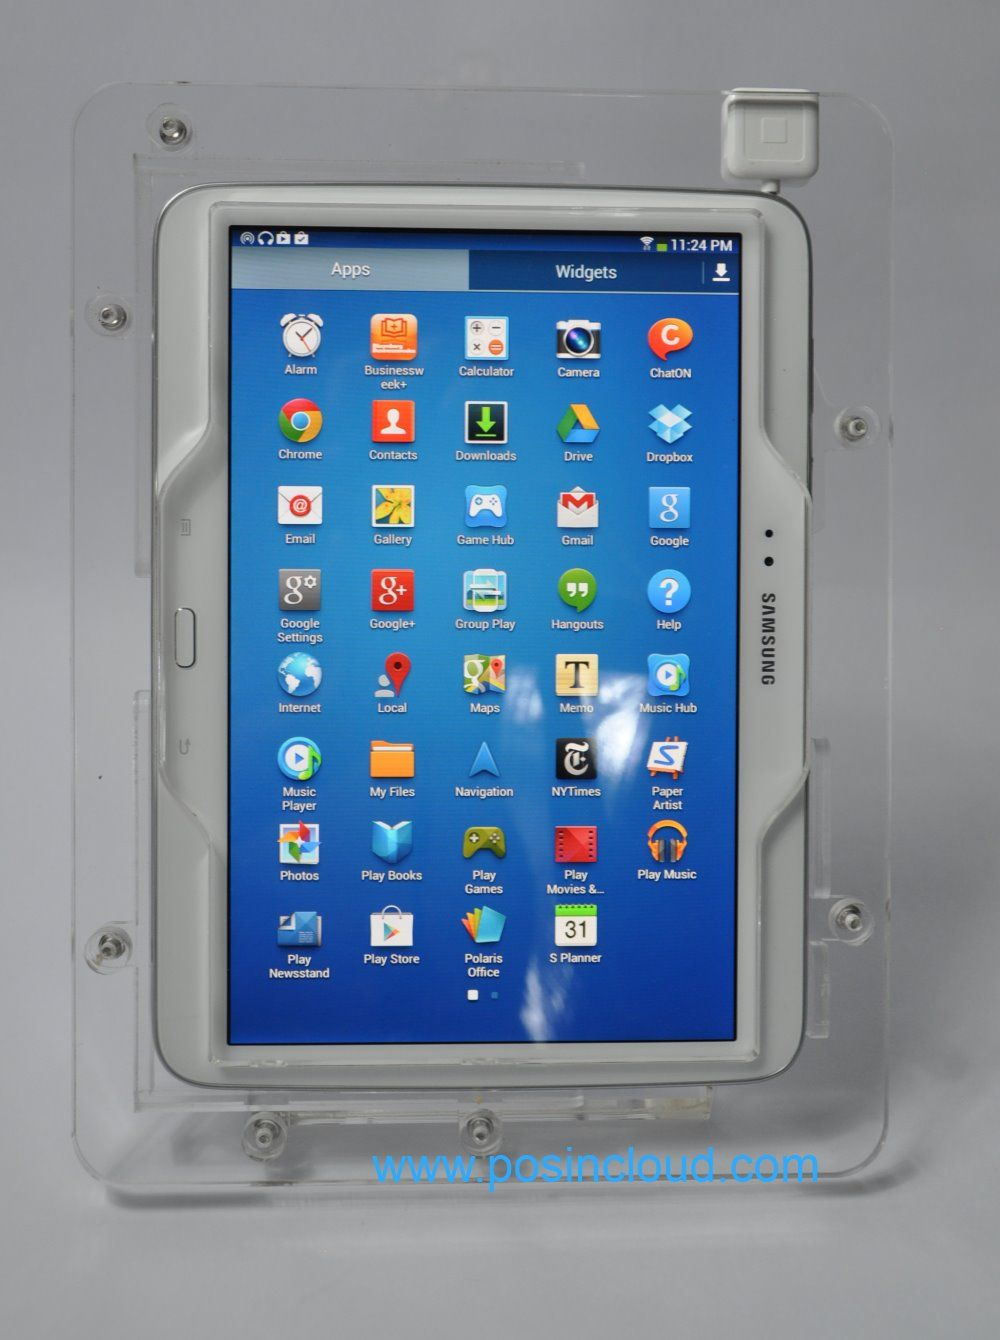 Security Enclosure For Samsung Galaxy Tab 3 10 1 Galaxy Note 10 1 2014 Edition And Galaxy Tab Pro It Fits Th Samsung Galaxy Tablet Samsung Galaxy Tab Samsung